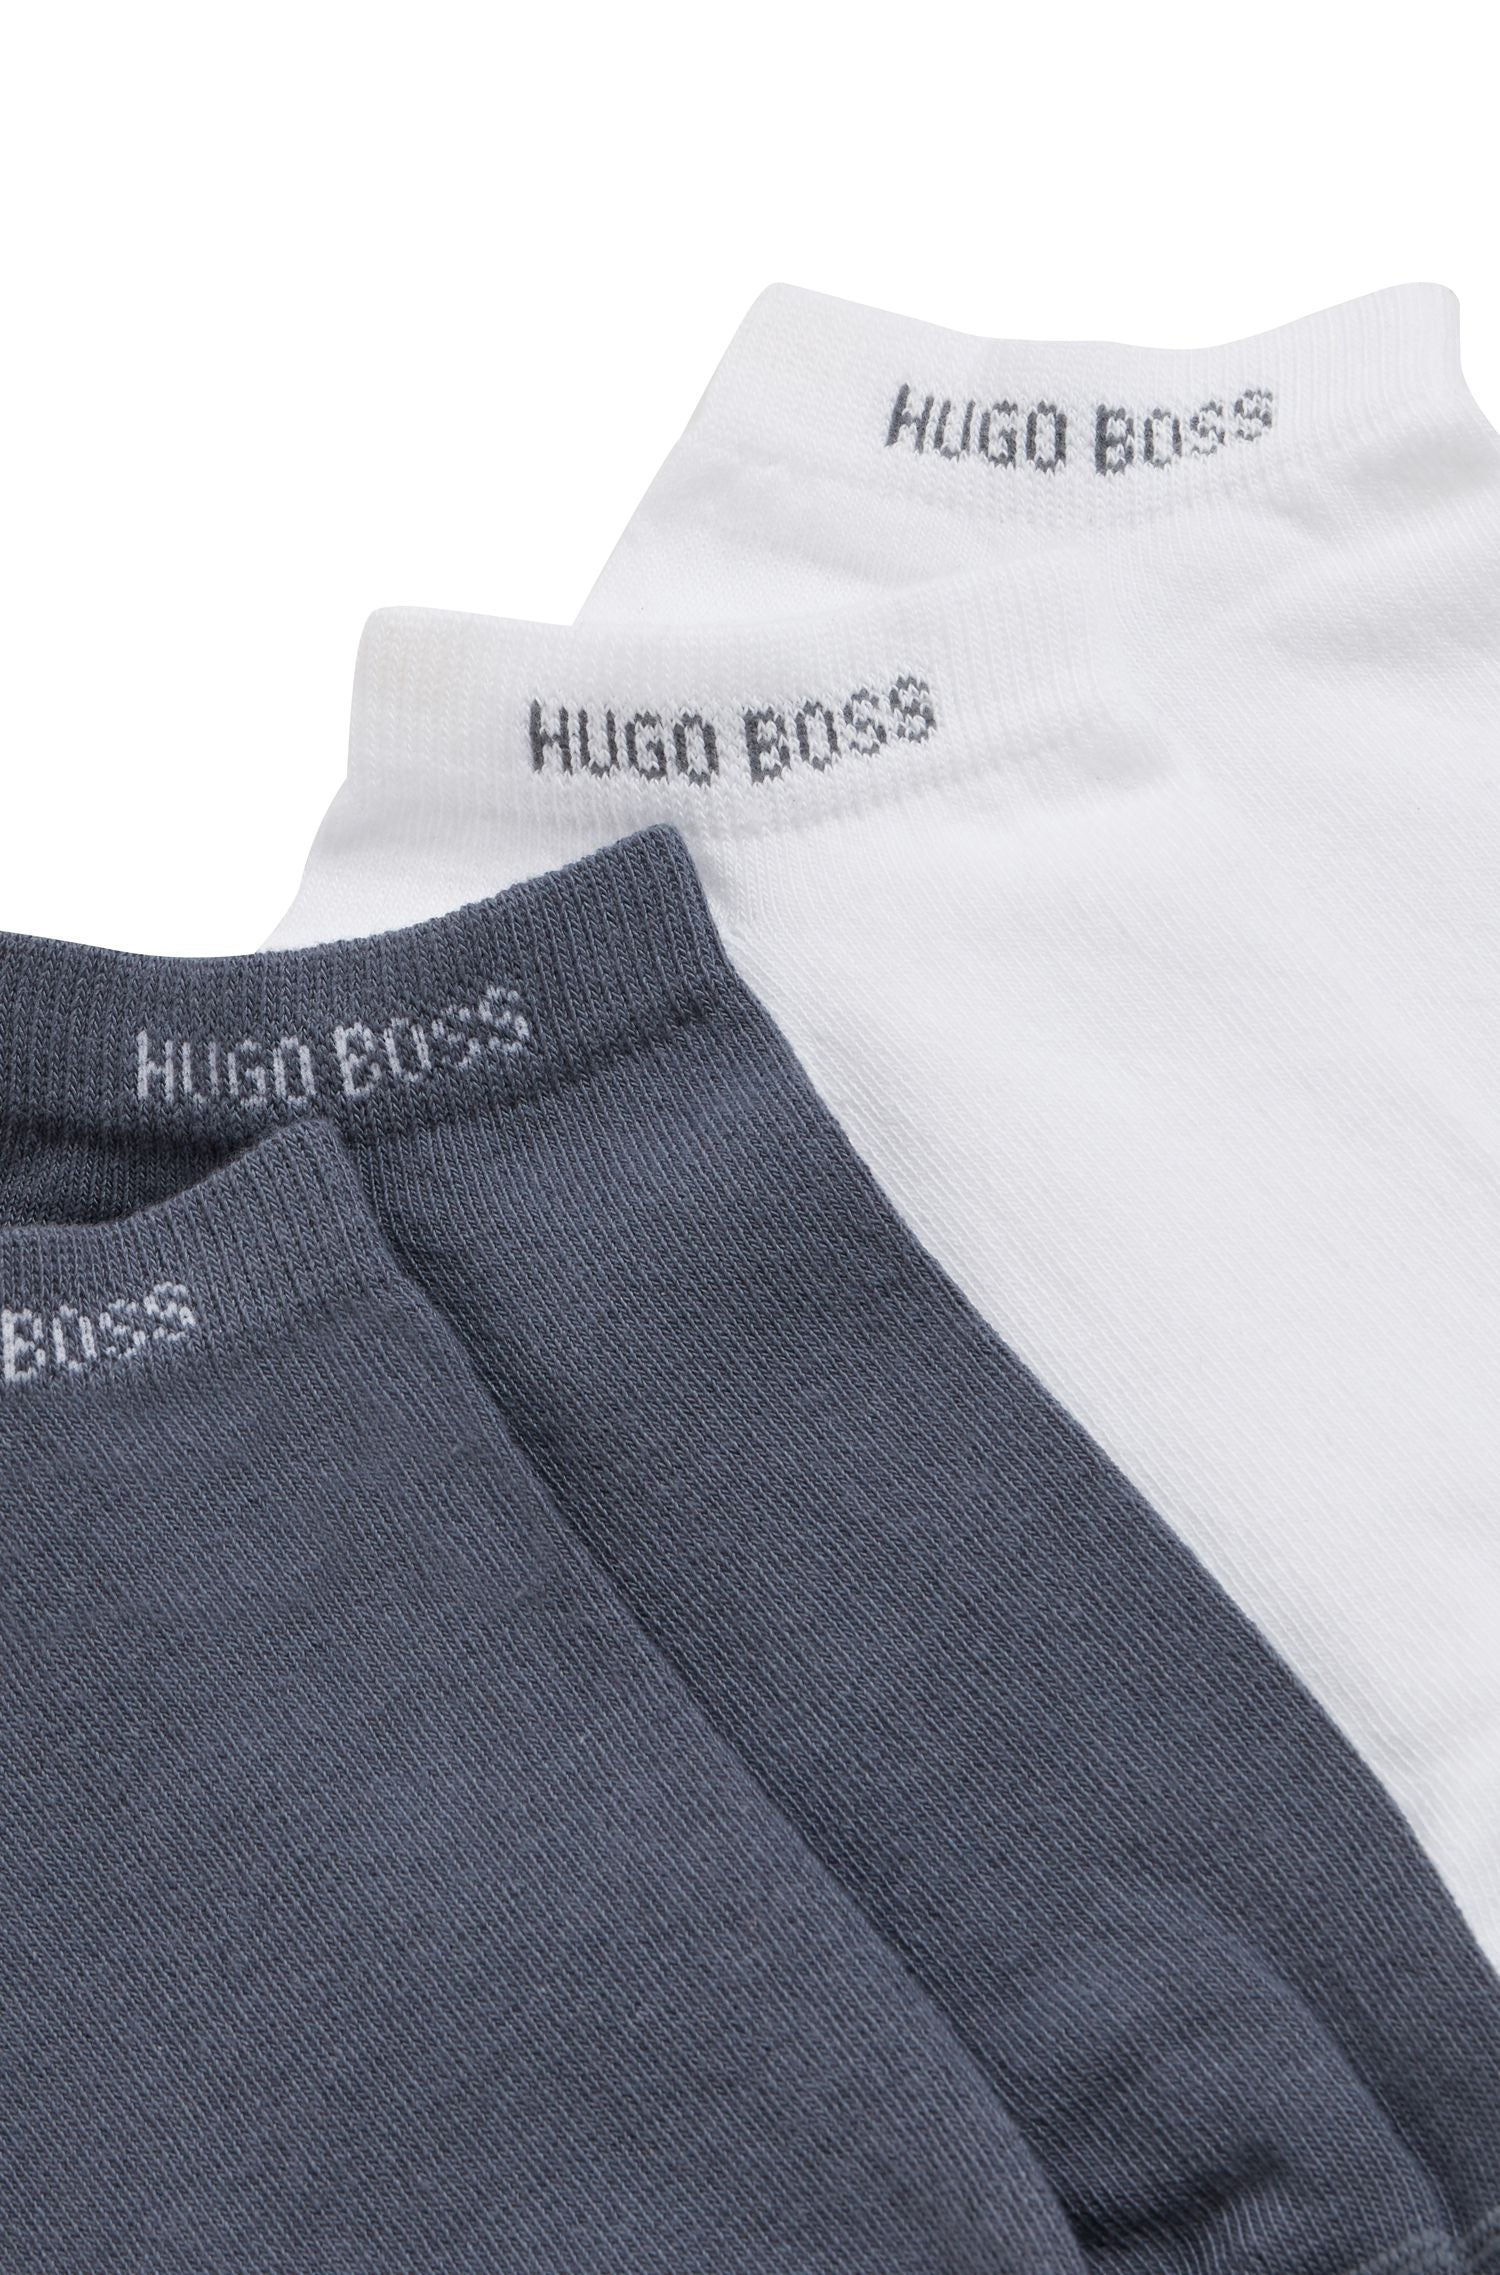 Hugo Boss - White and Grey 2-pack of Ankle Socks in a Cotton Blend 50407405